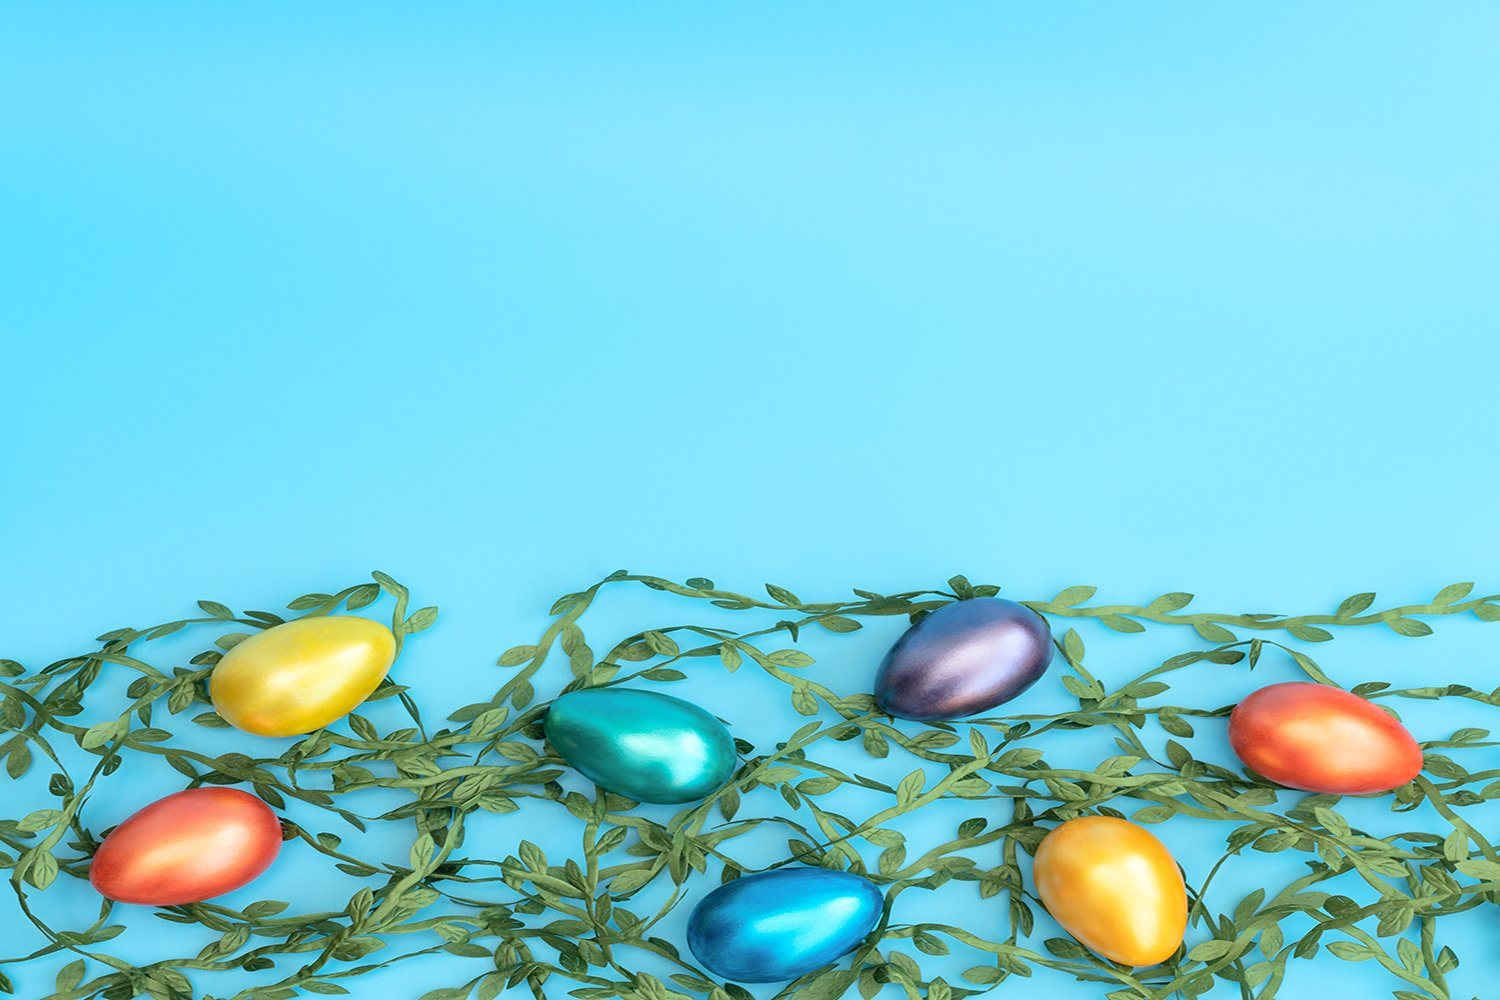 Decorated Easter eggs lie on green leaves example image 1